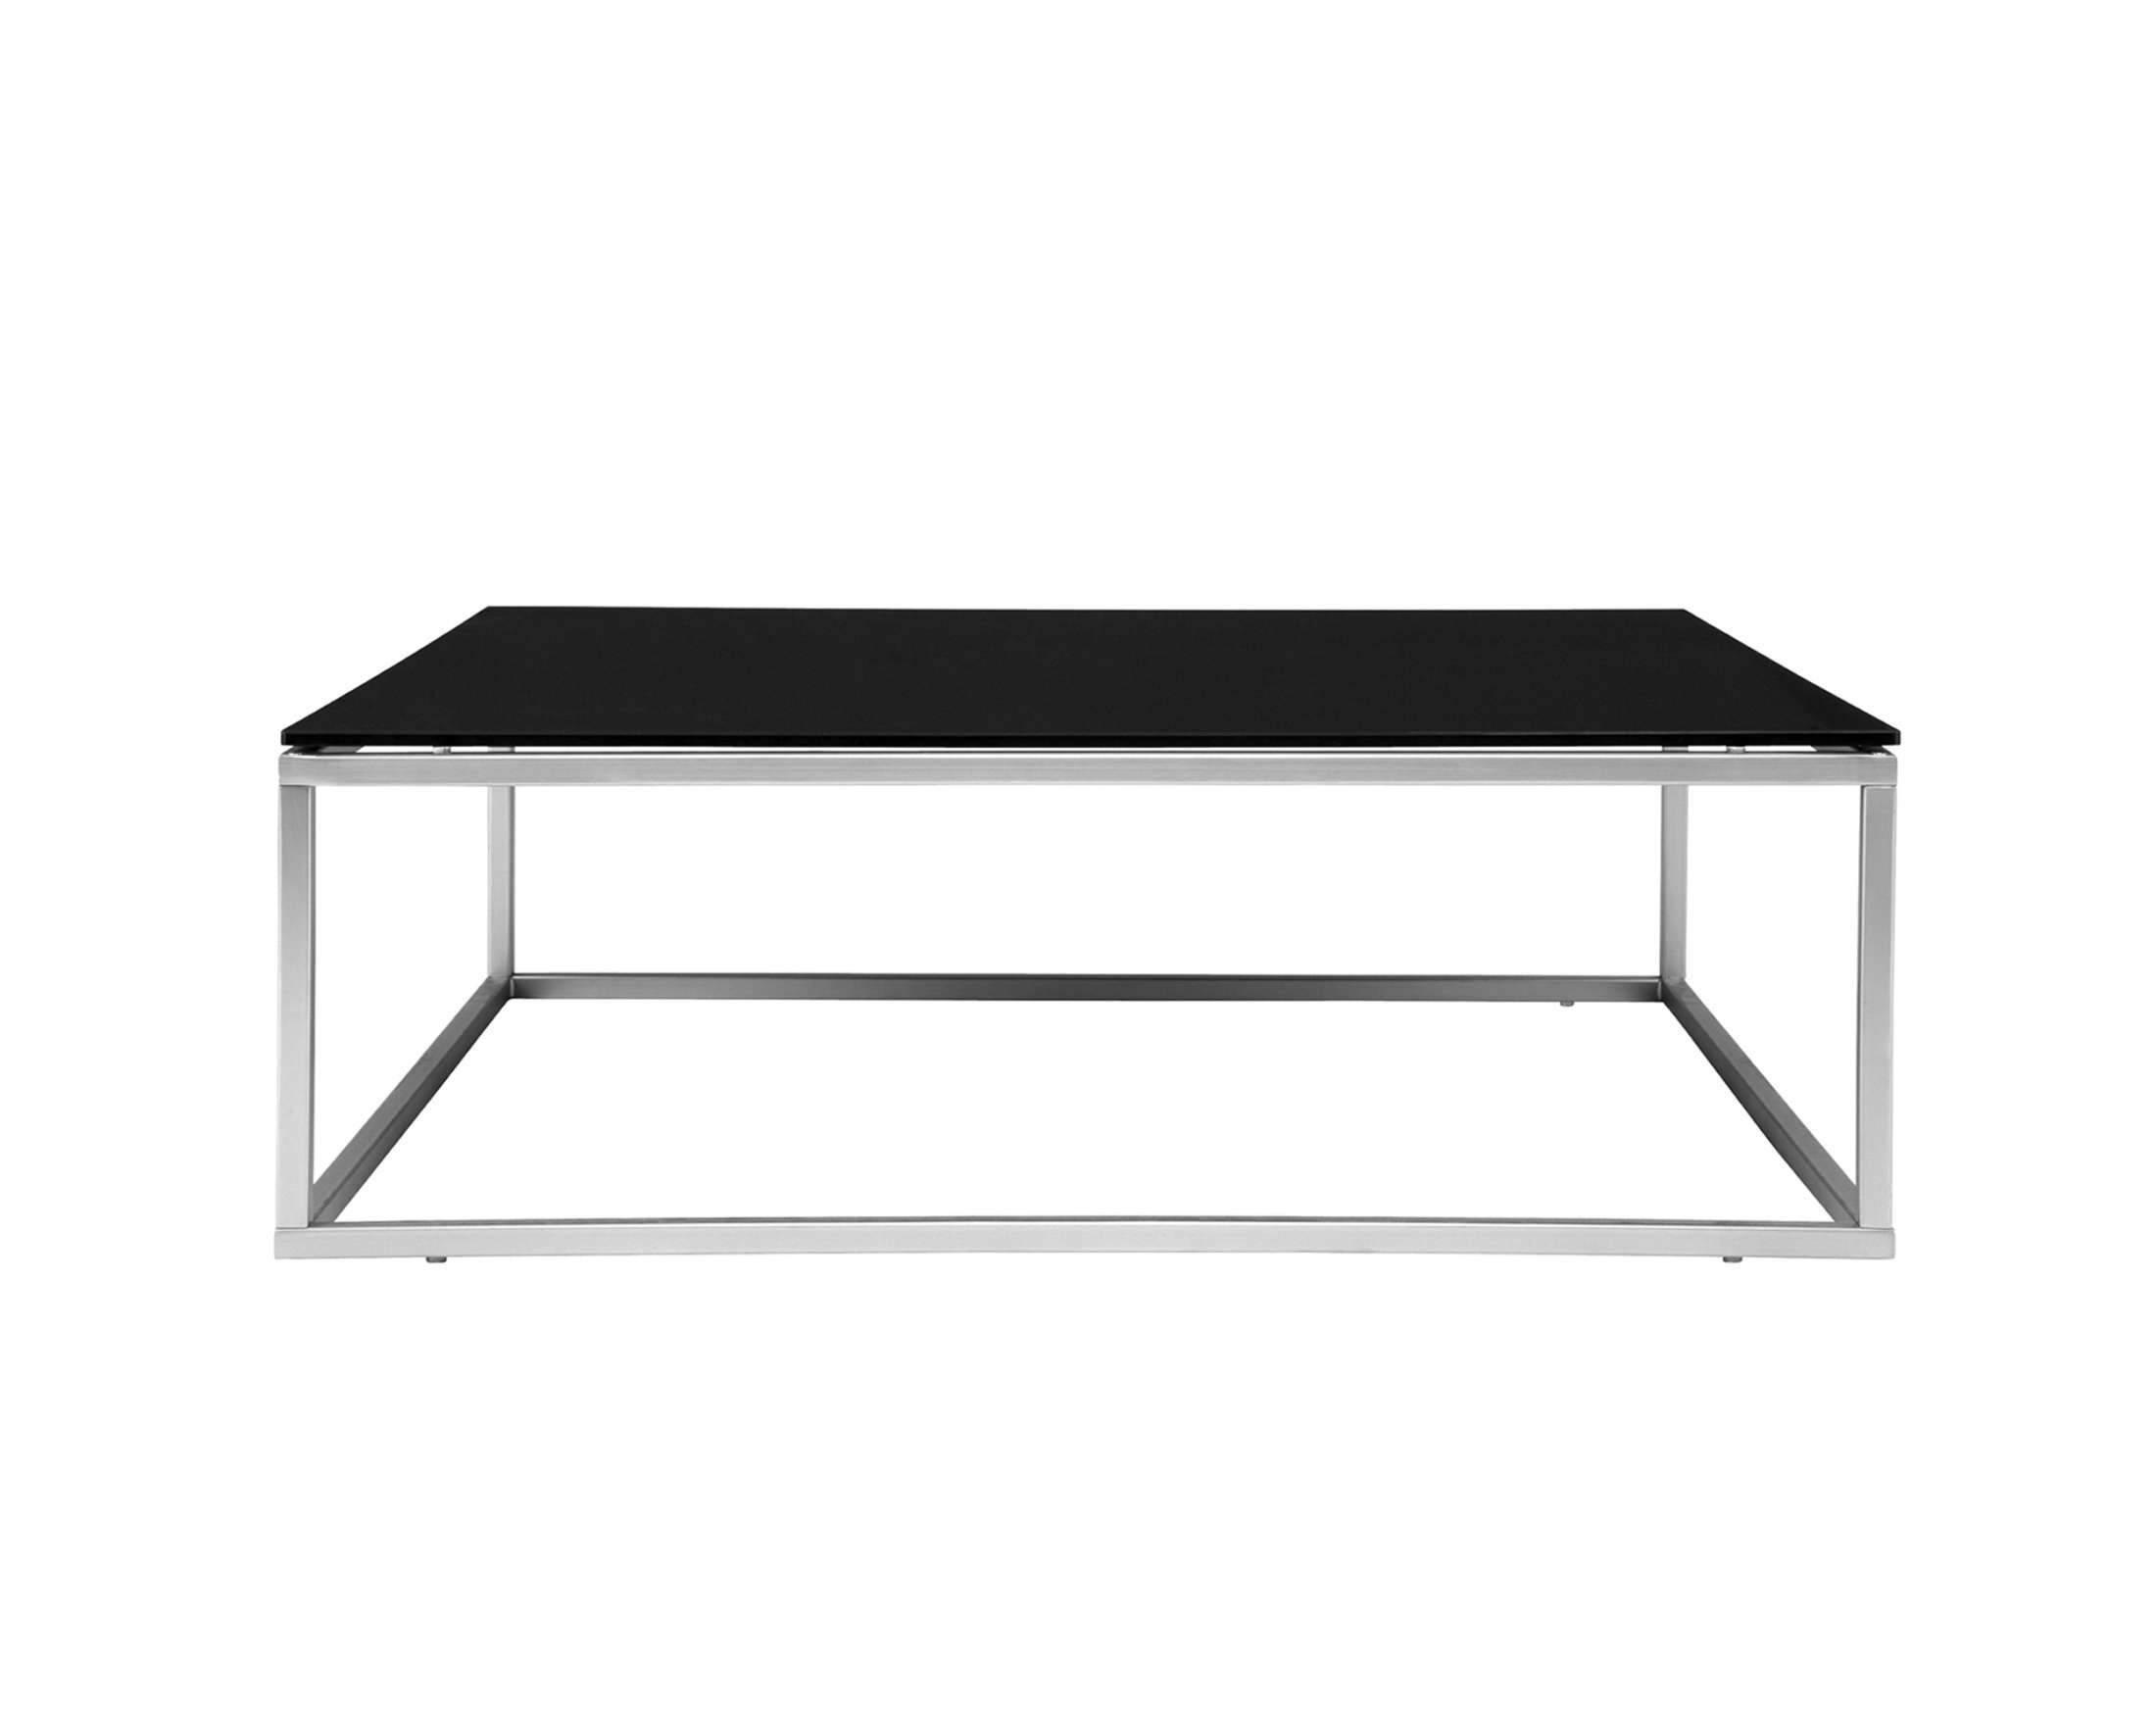 Black Glass Coffee Table With Chrome Legs • Coffee Table Design Within Well Known Chrome Leg Coffee Tables (View 2 of 20)